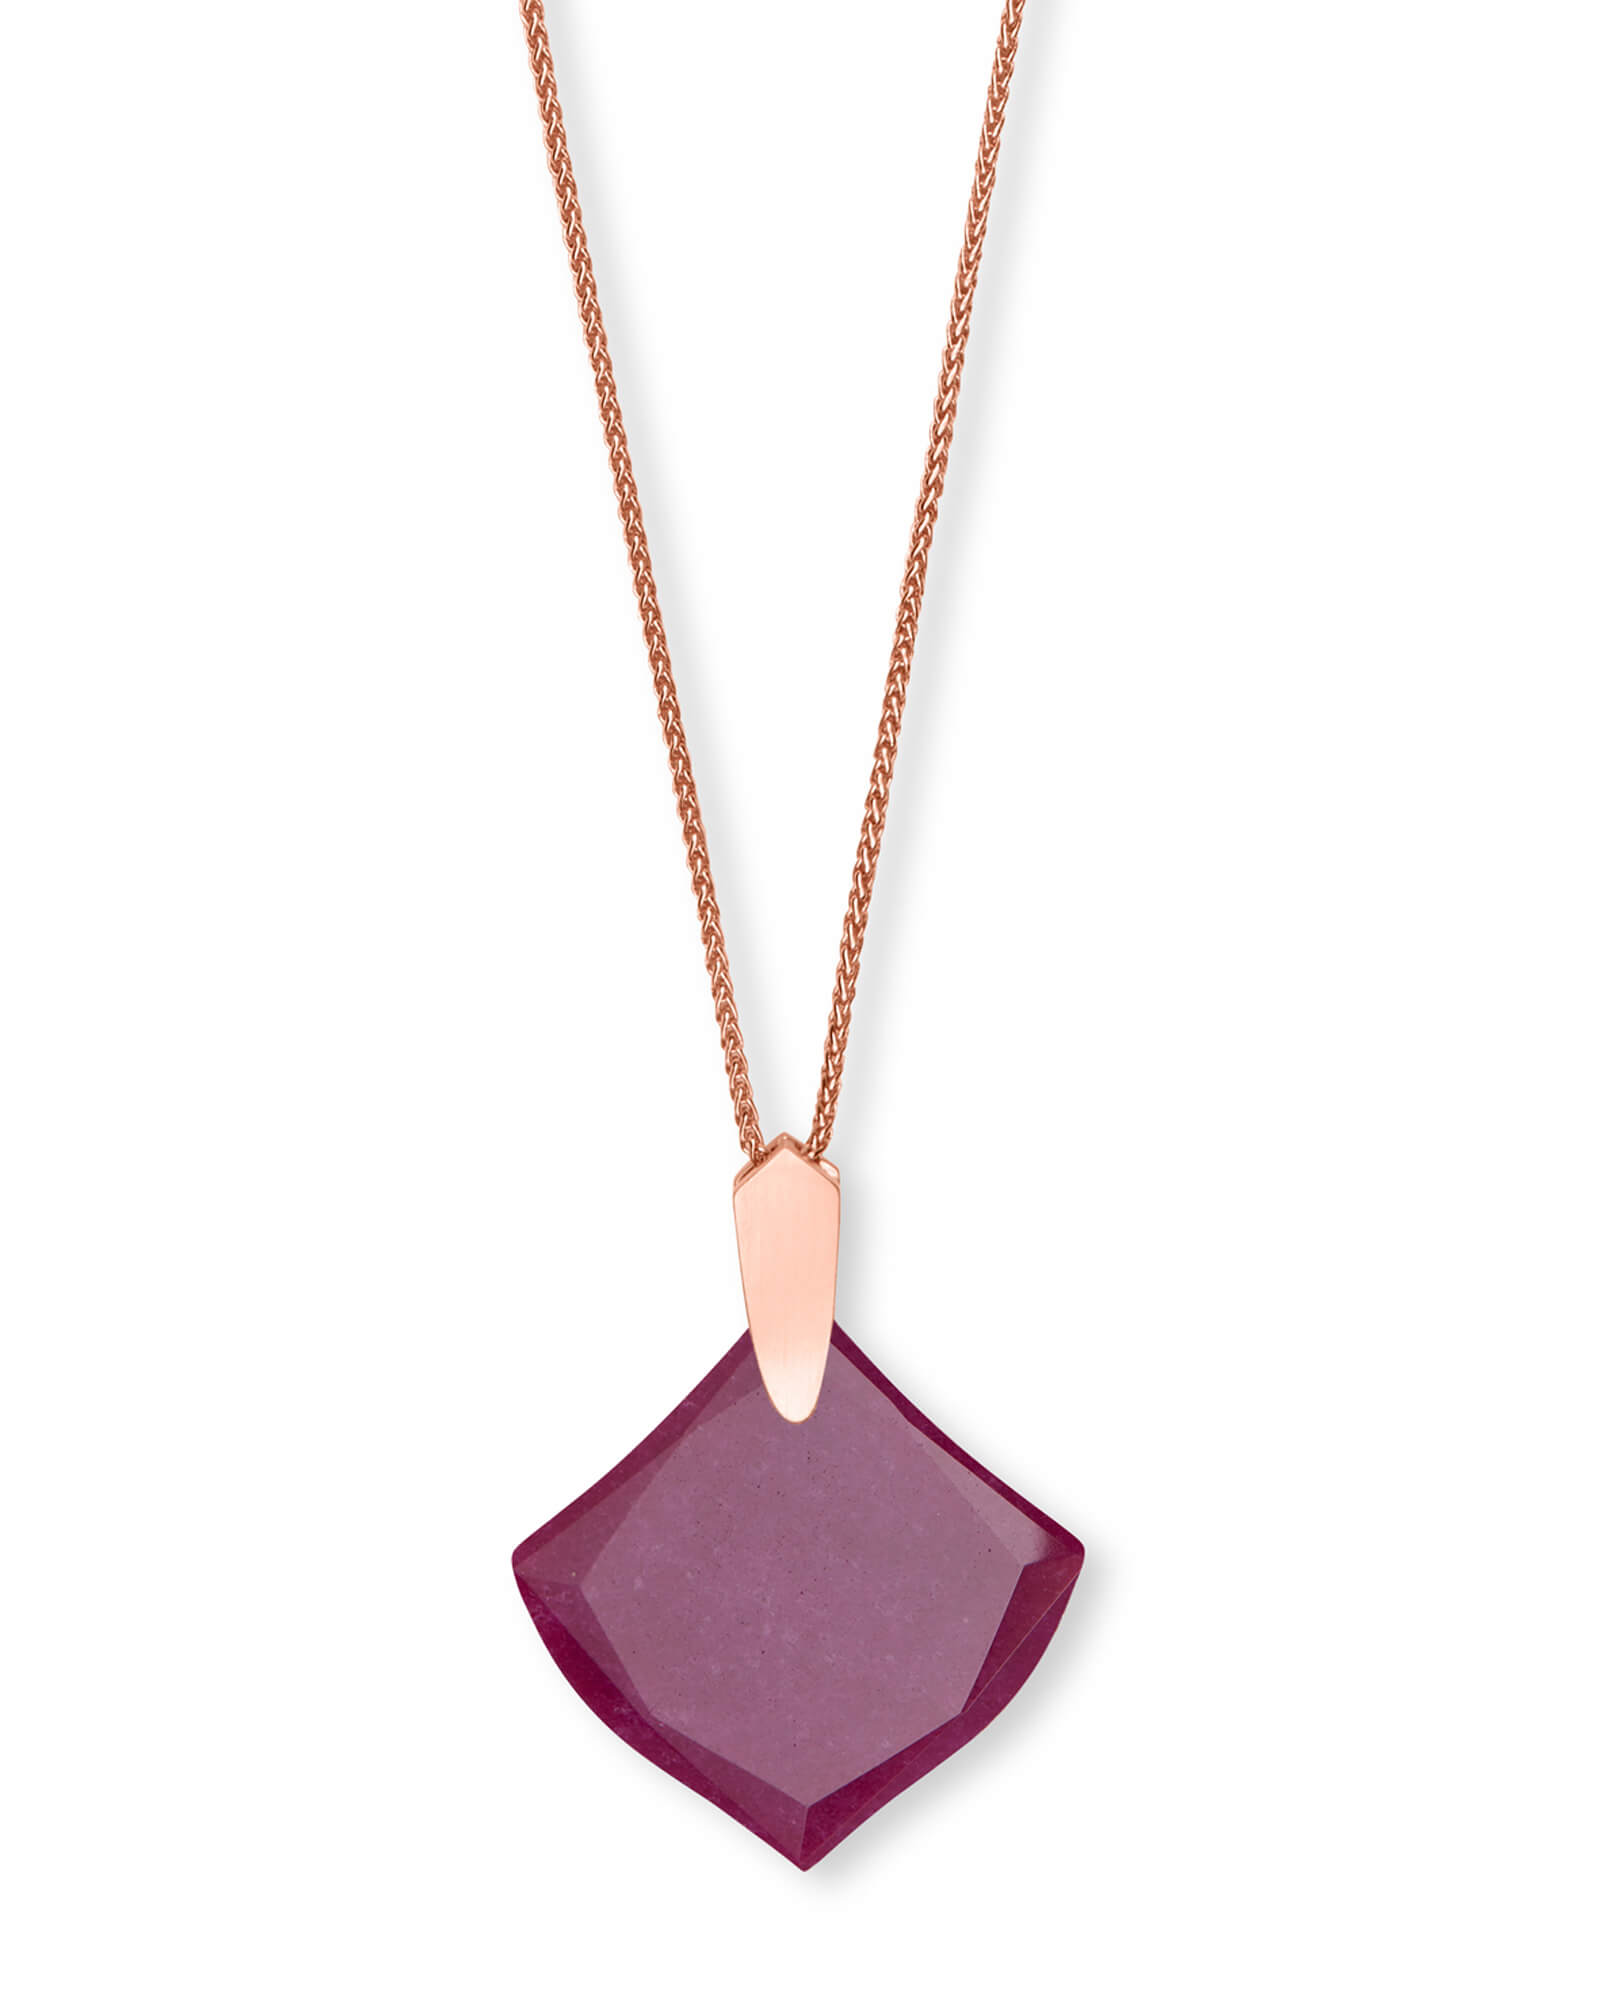 Aislinn Rose Gold Long Pendant Necklace in Maroon Jade